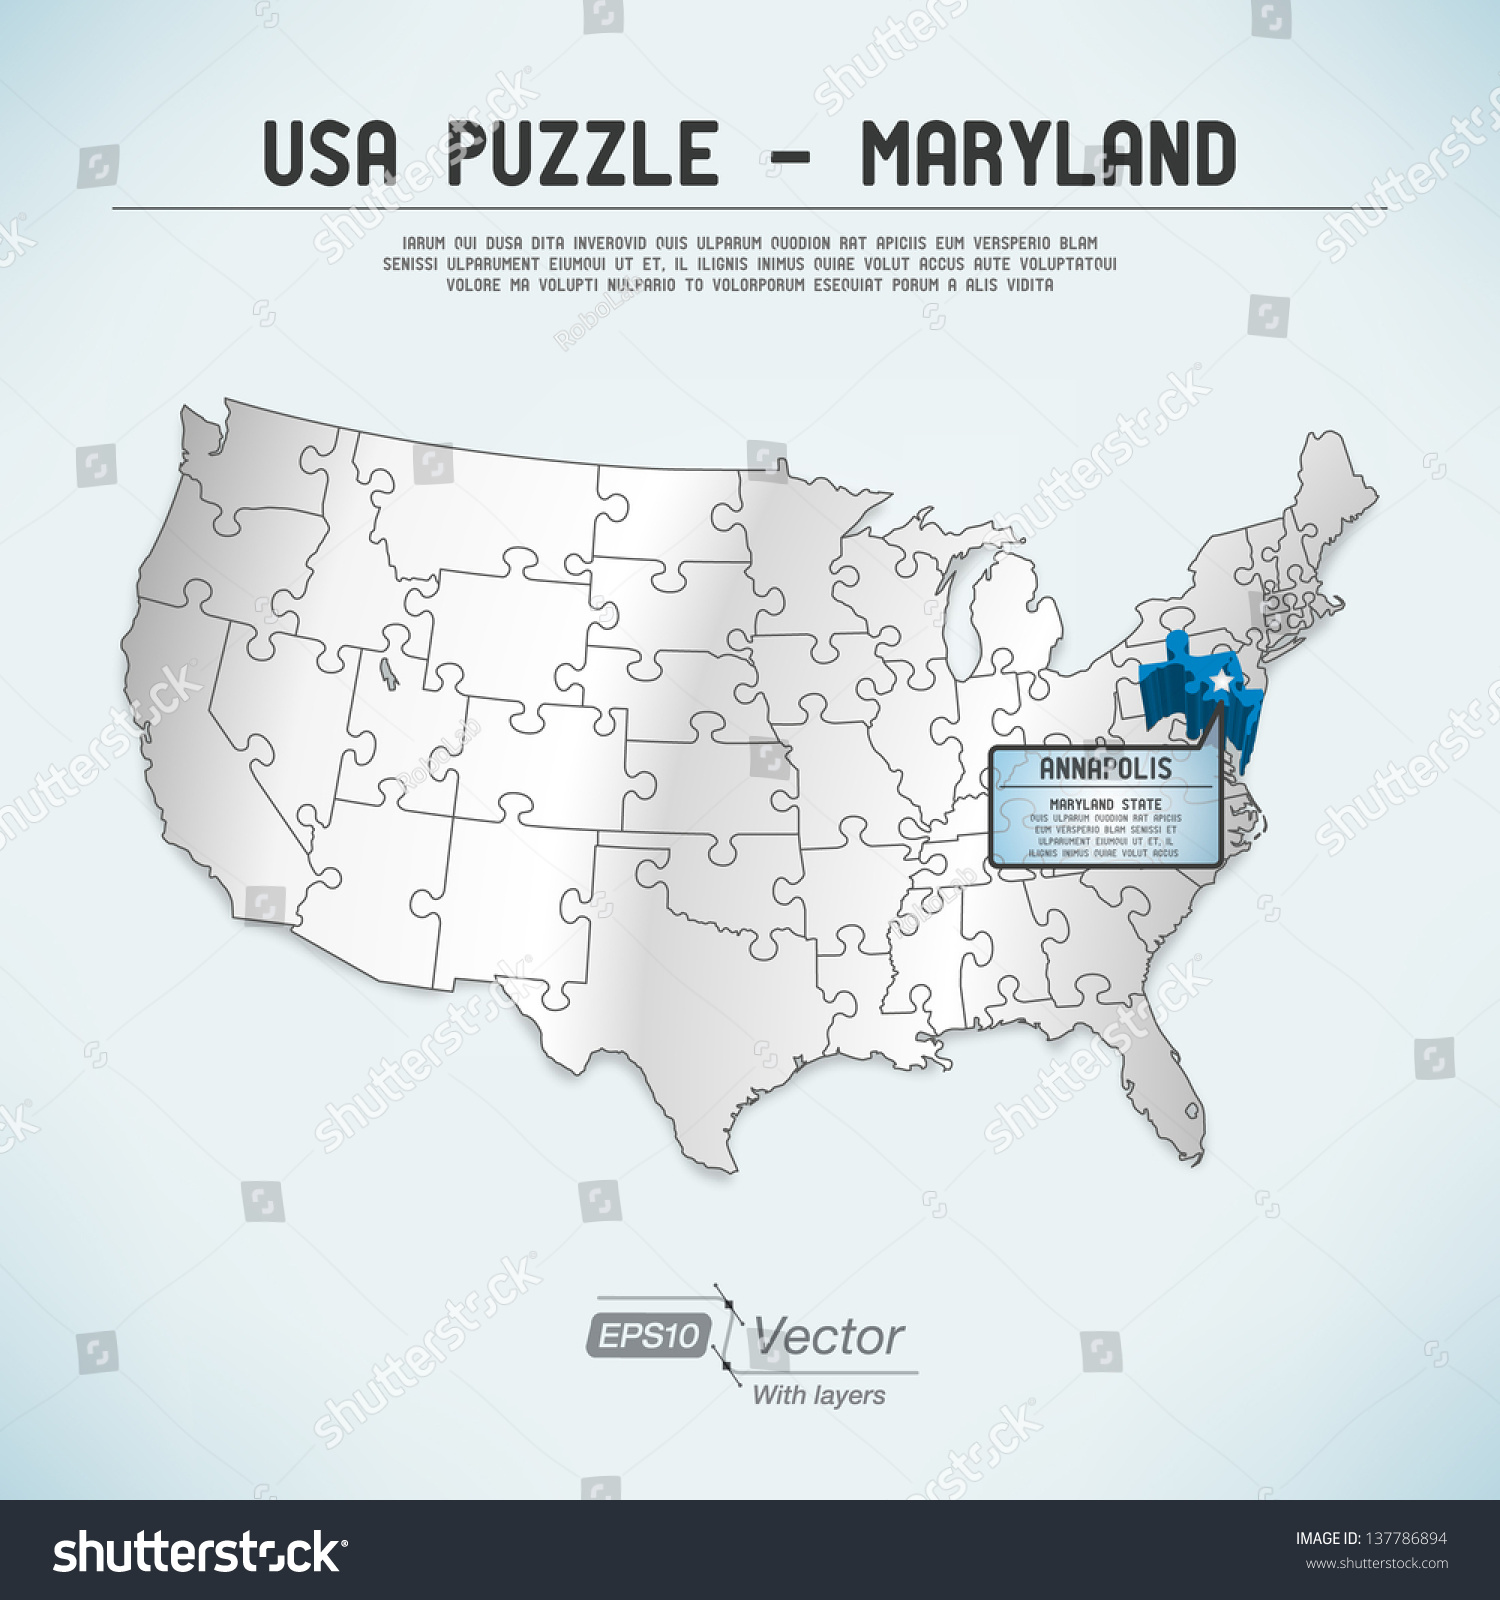 Maryland State Map The Desire Map - Us map maryland